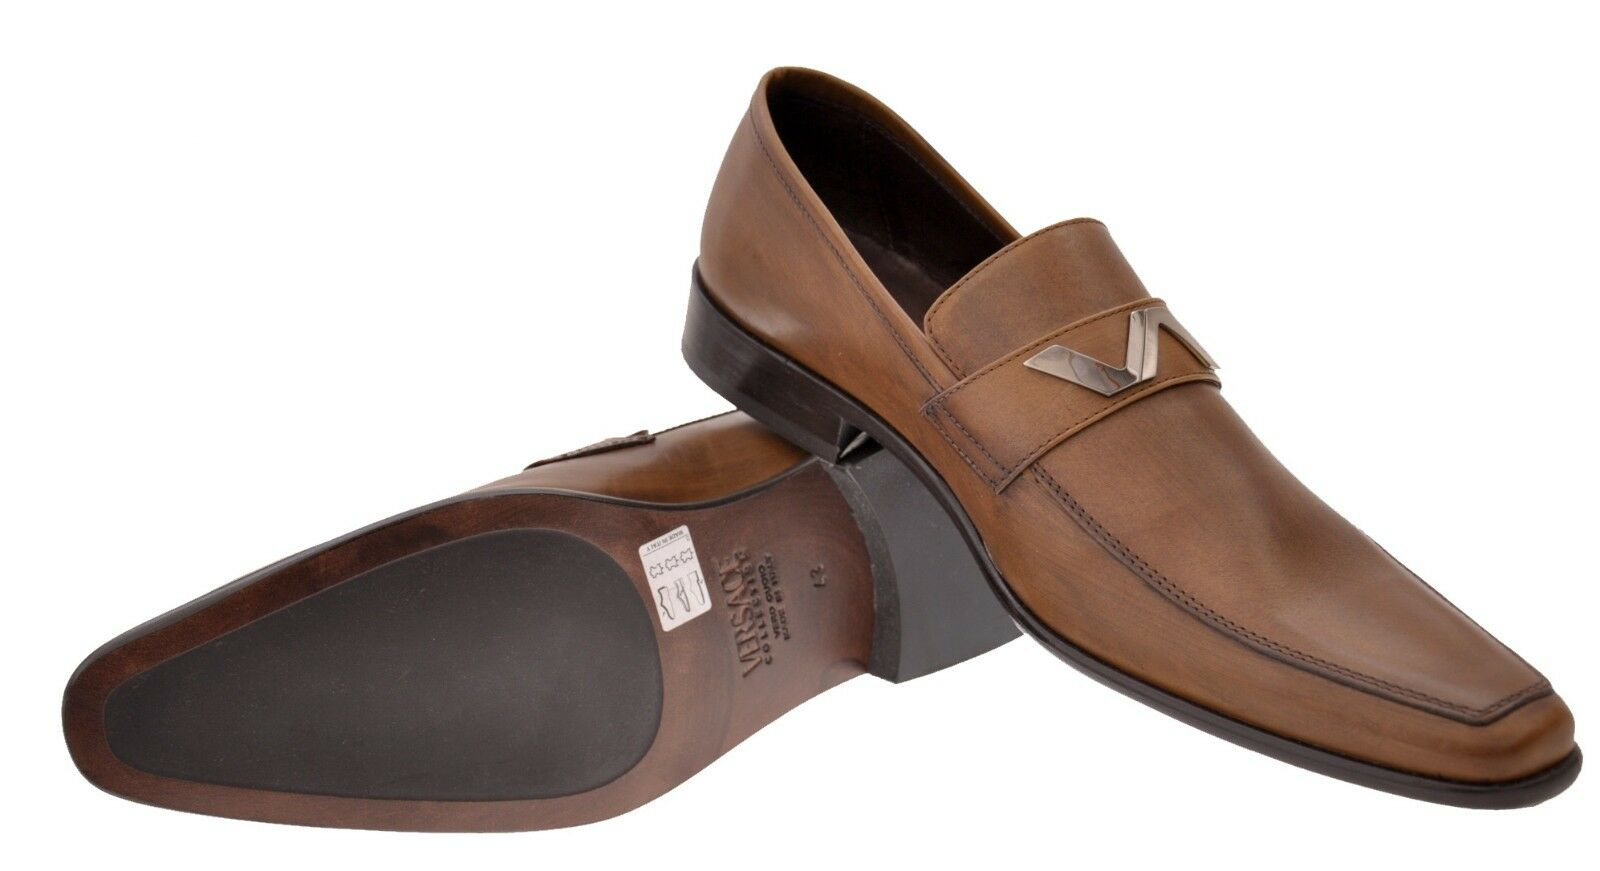 NEW VERSACE BROWN LEATHER SHOES LOAFERS 40 40 40 - 7 7c4dac